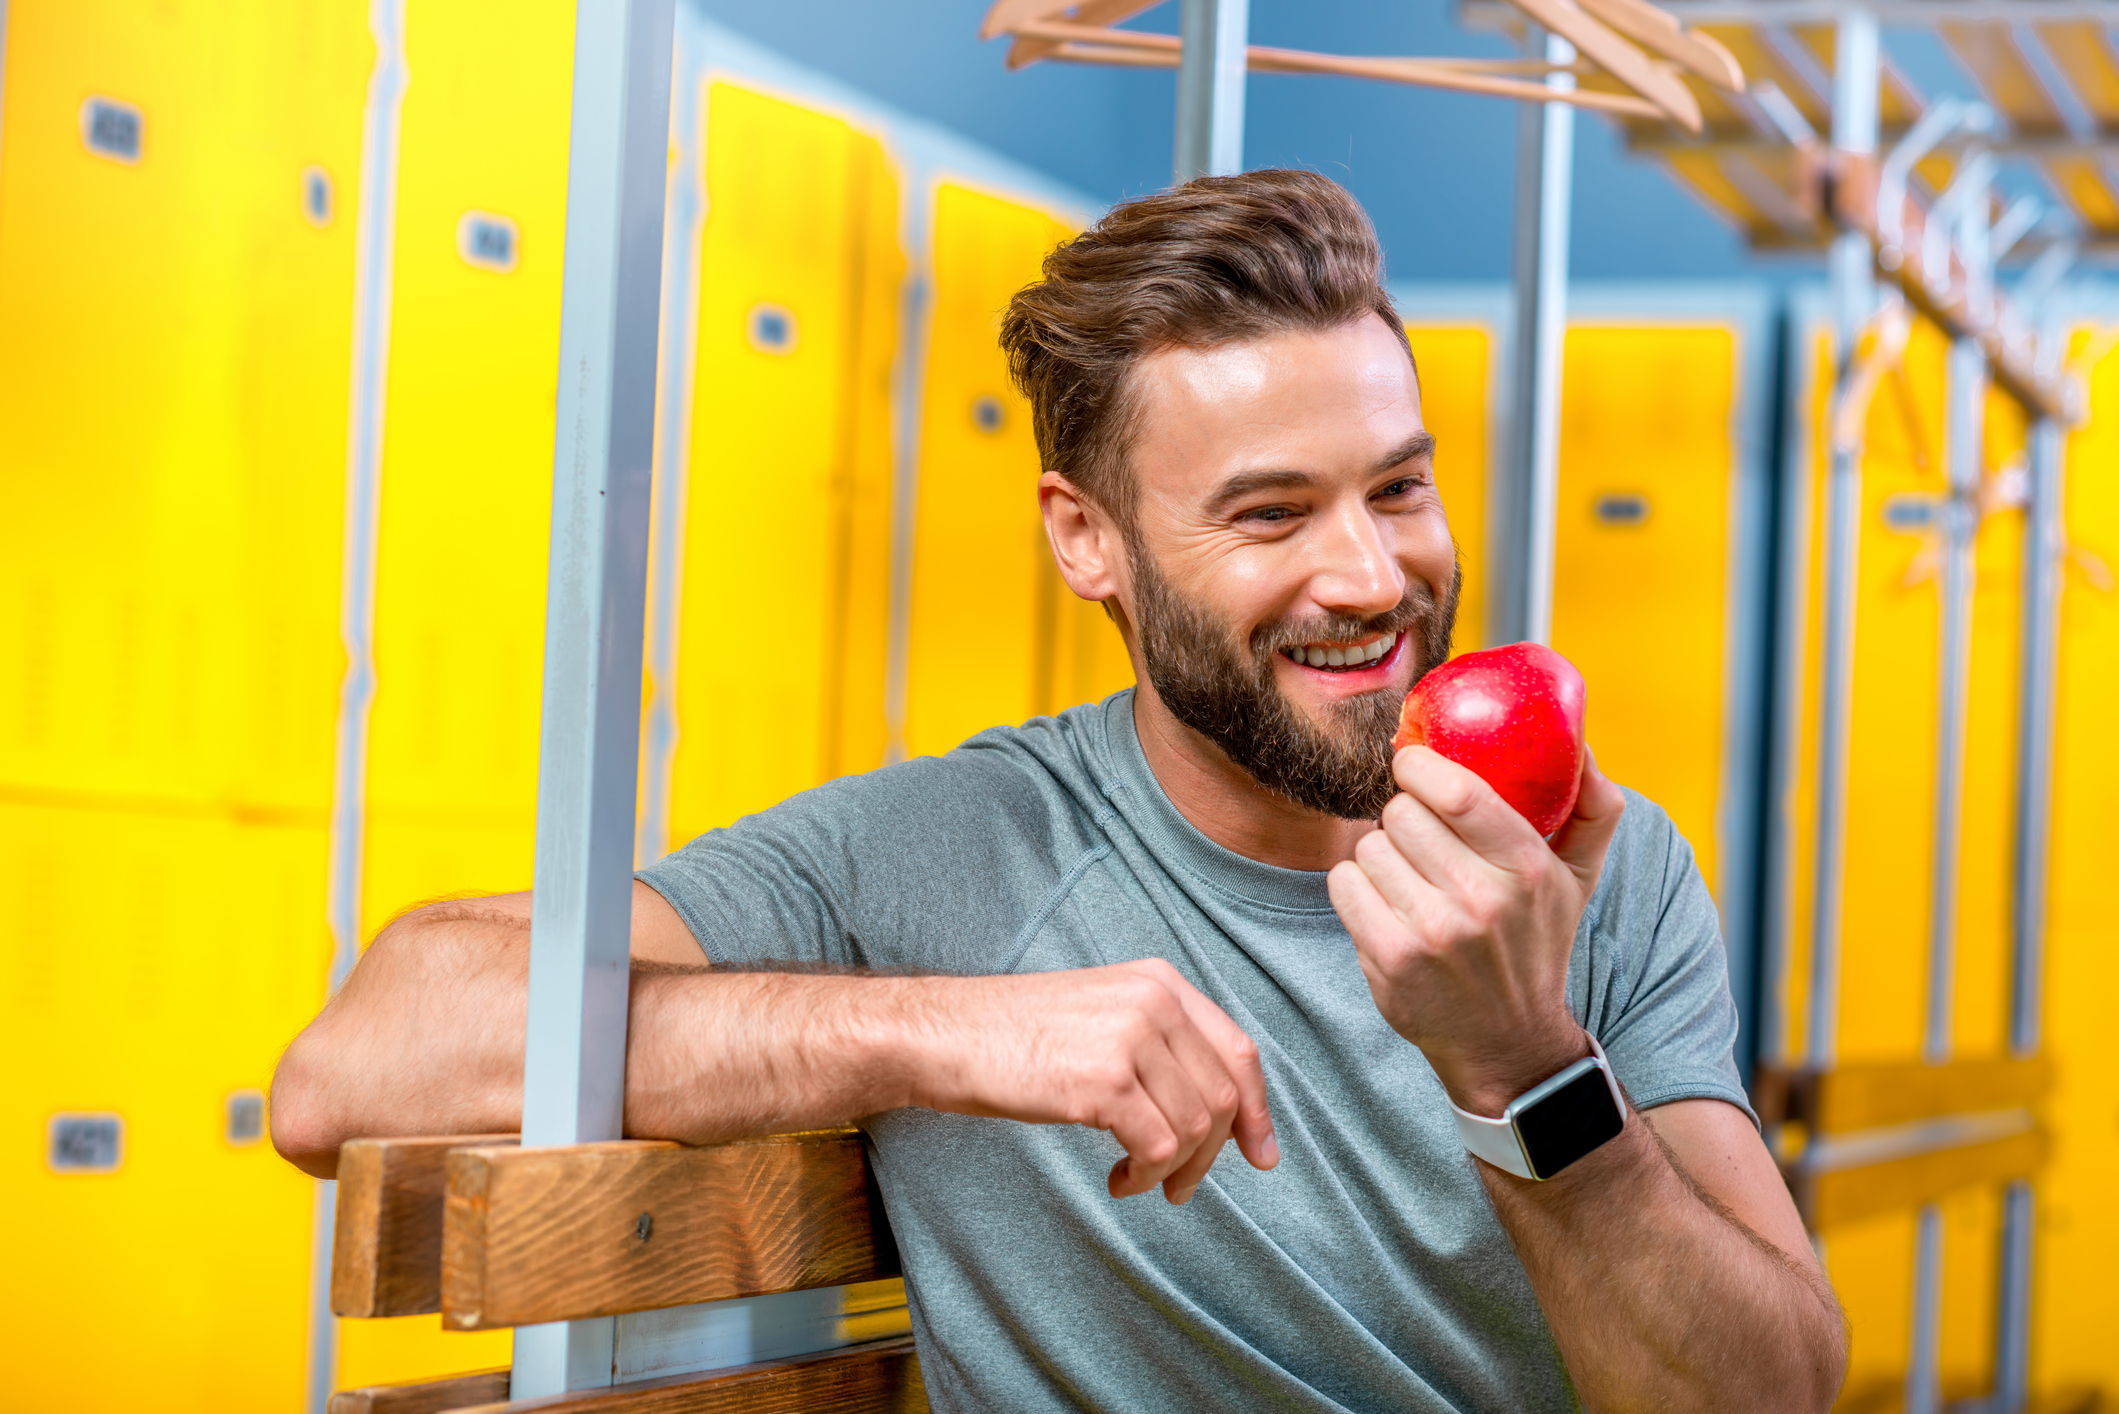 What fruit can do for insulin sensitivity